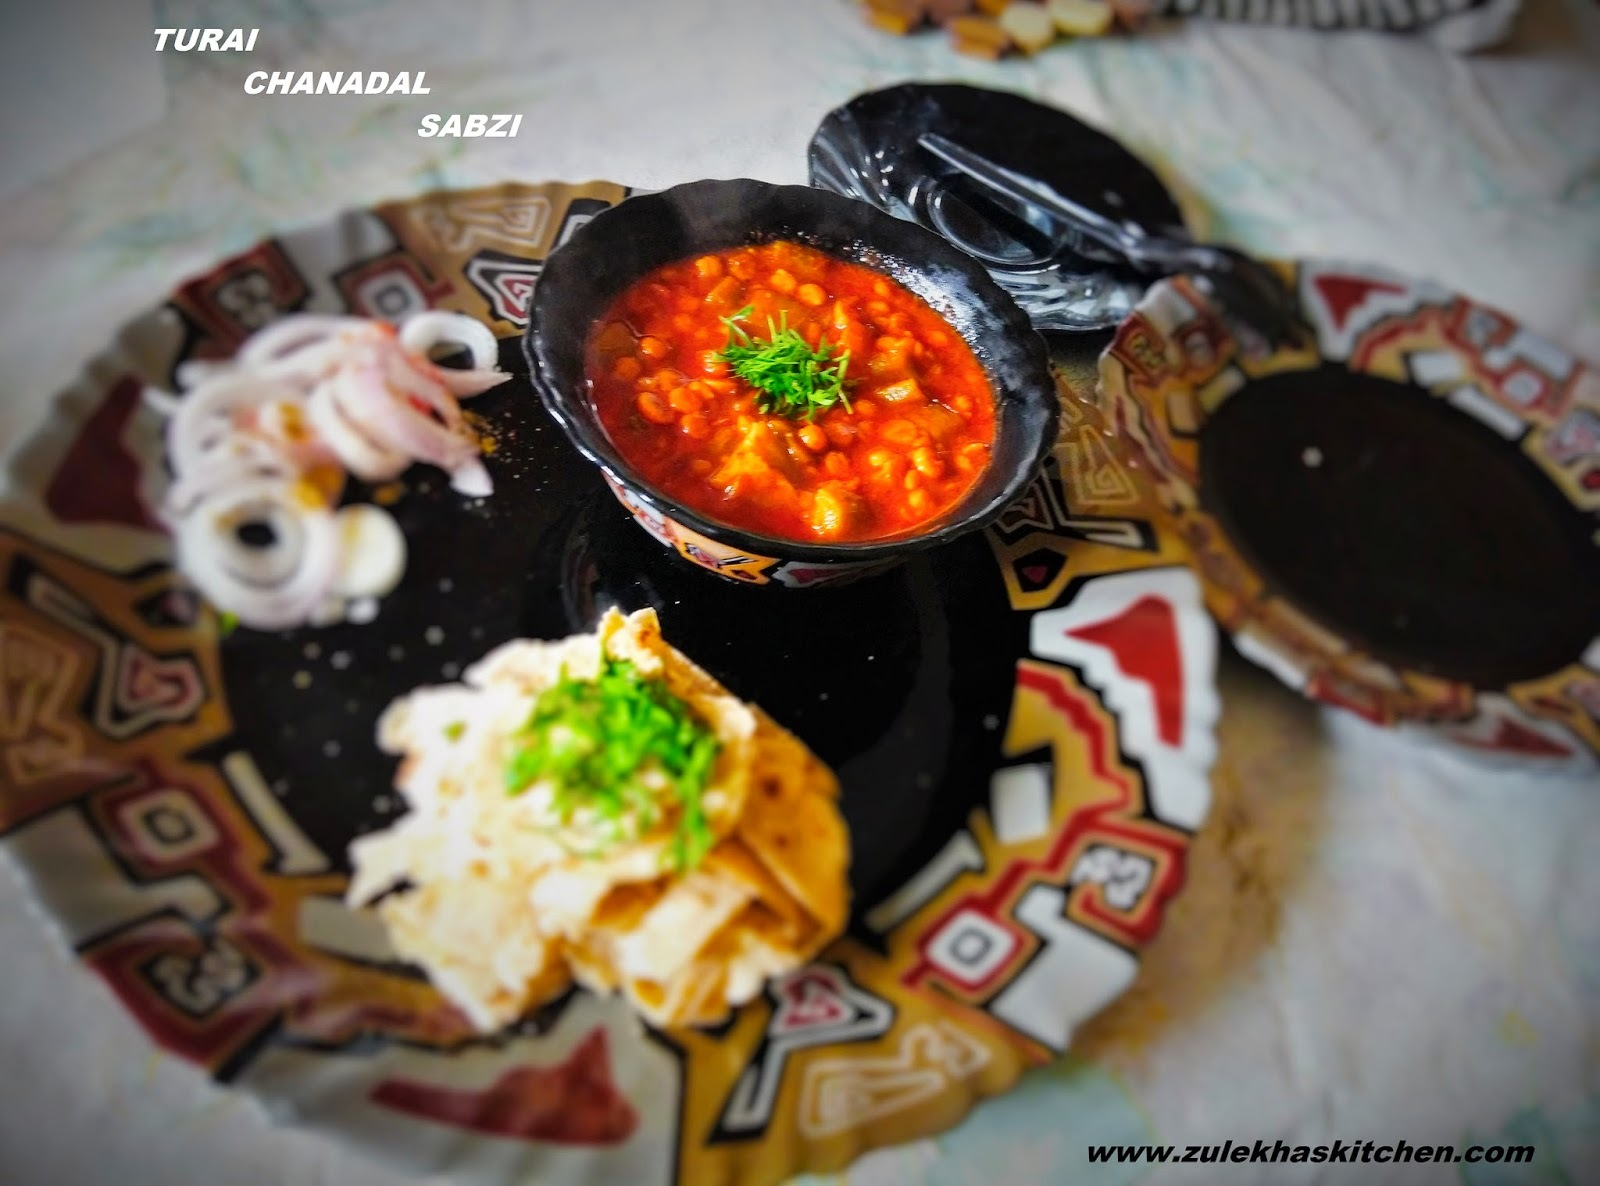 Recipe of Turai Chanadal sabzi